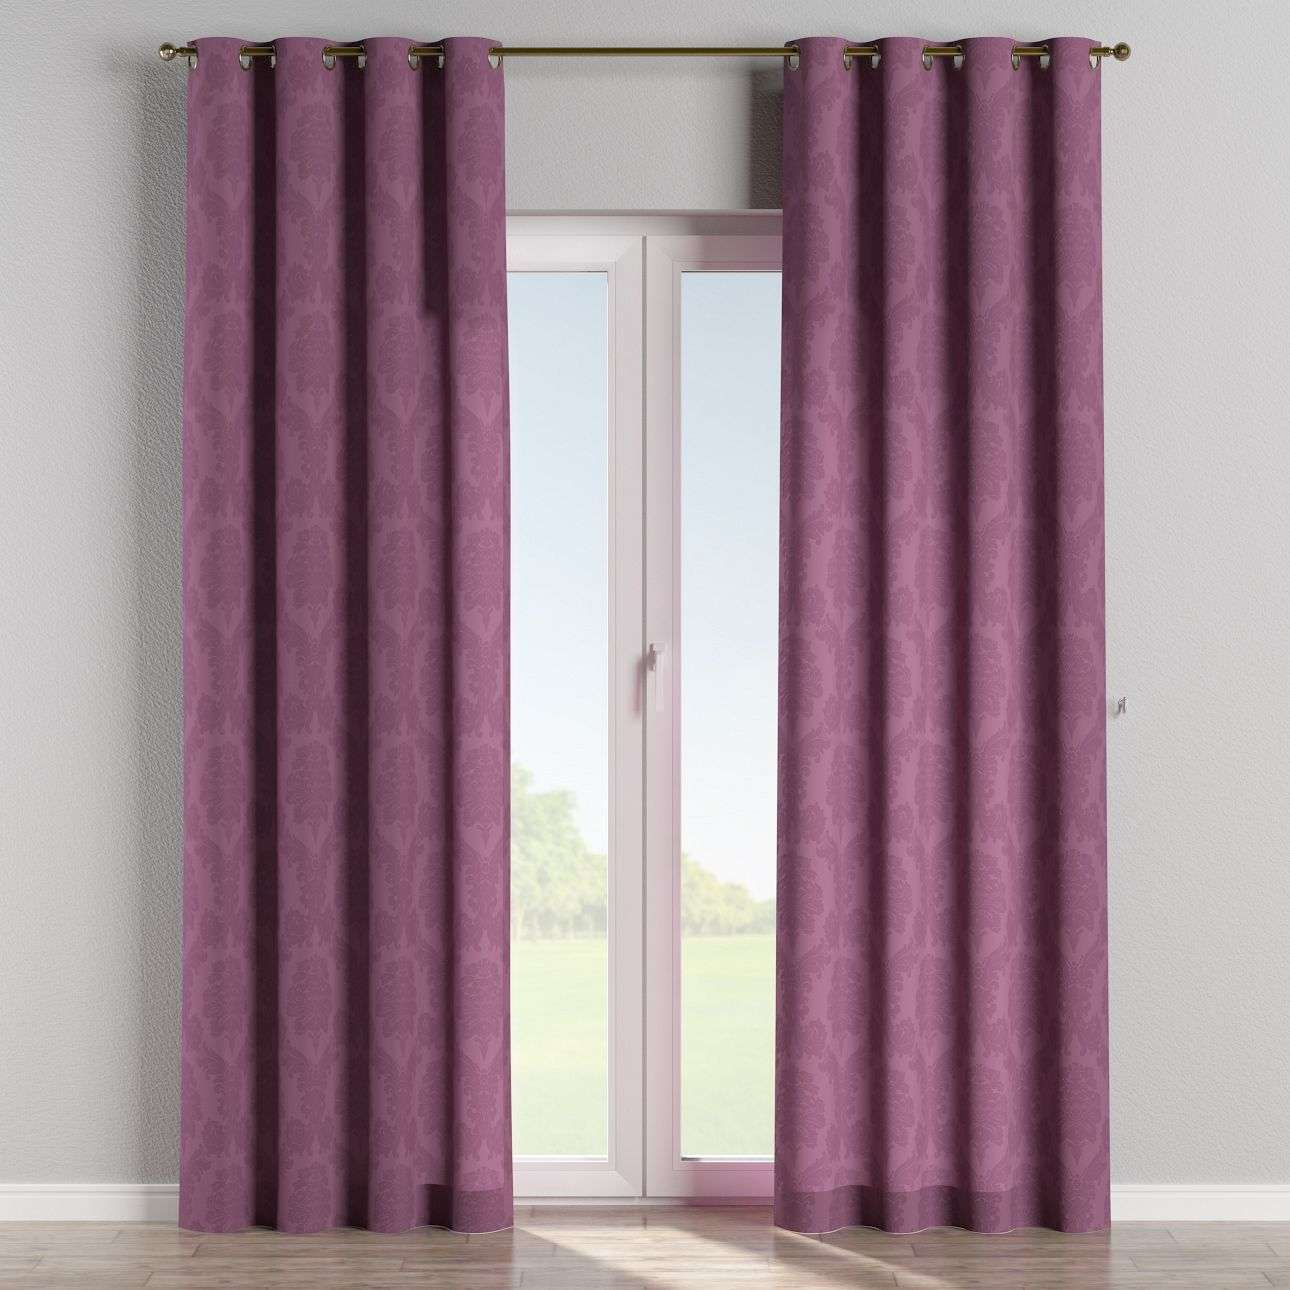 Eyelet curtains in collection Damasco, fabric: 613-75